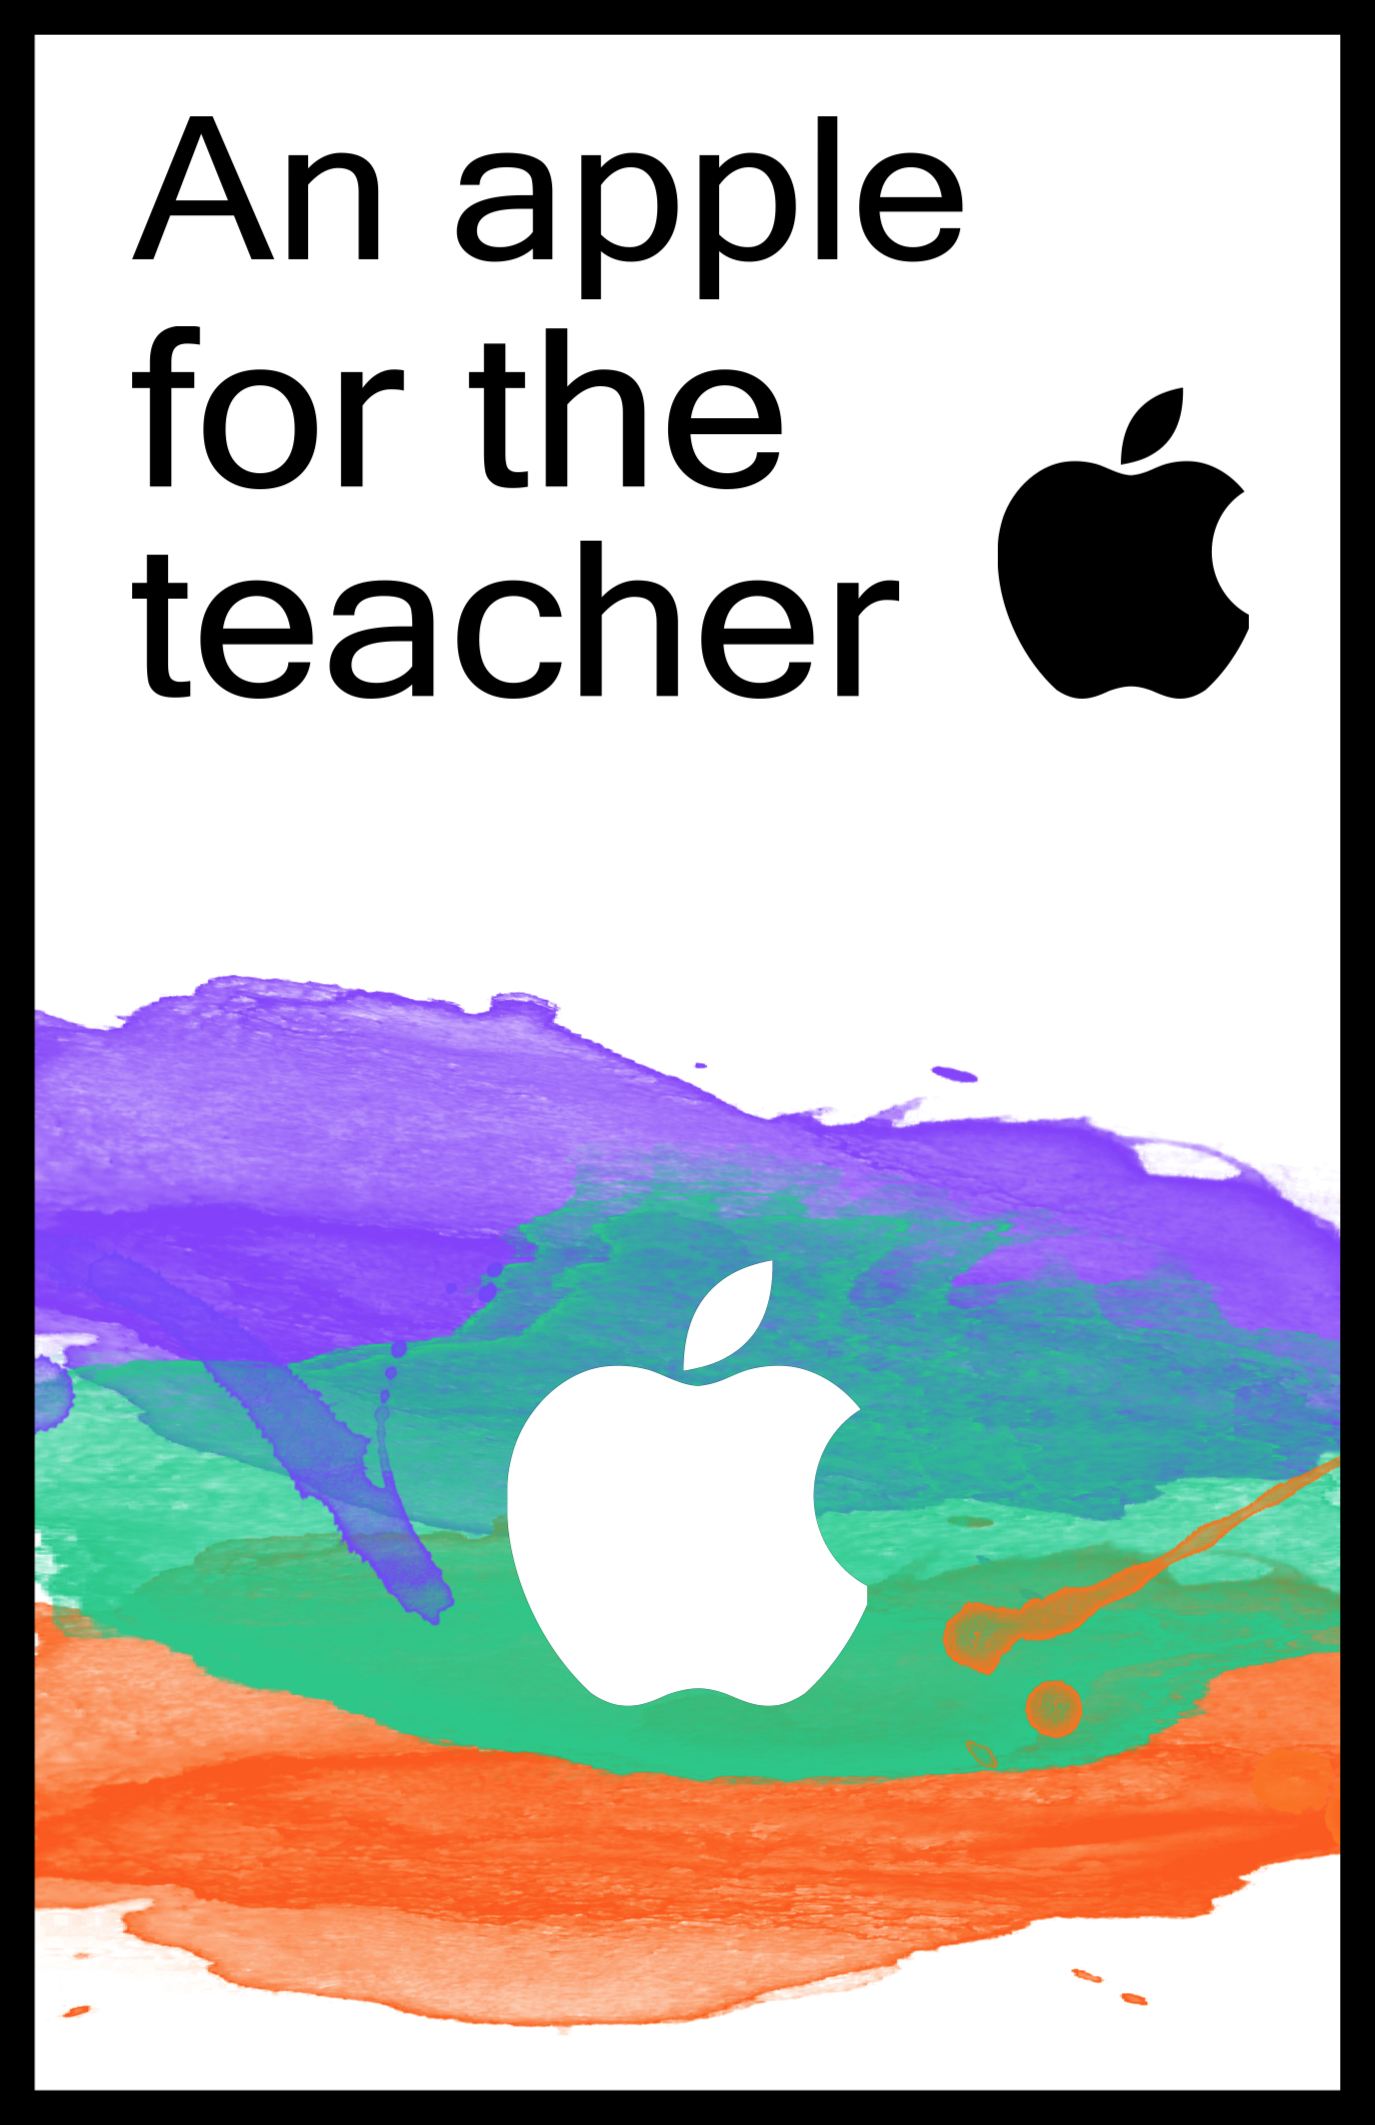 photograph regarding Printable Itunes Gift Cards called Apple Instructor Printable iTunes Present Card Holder - Paper